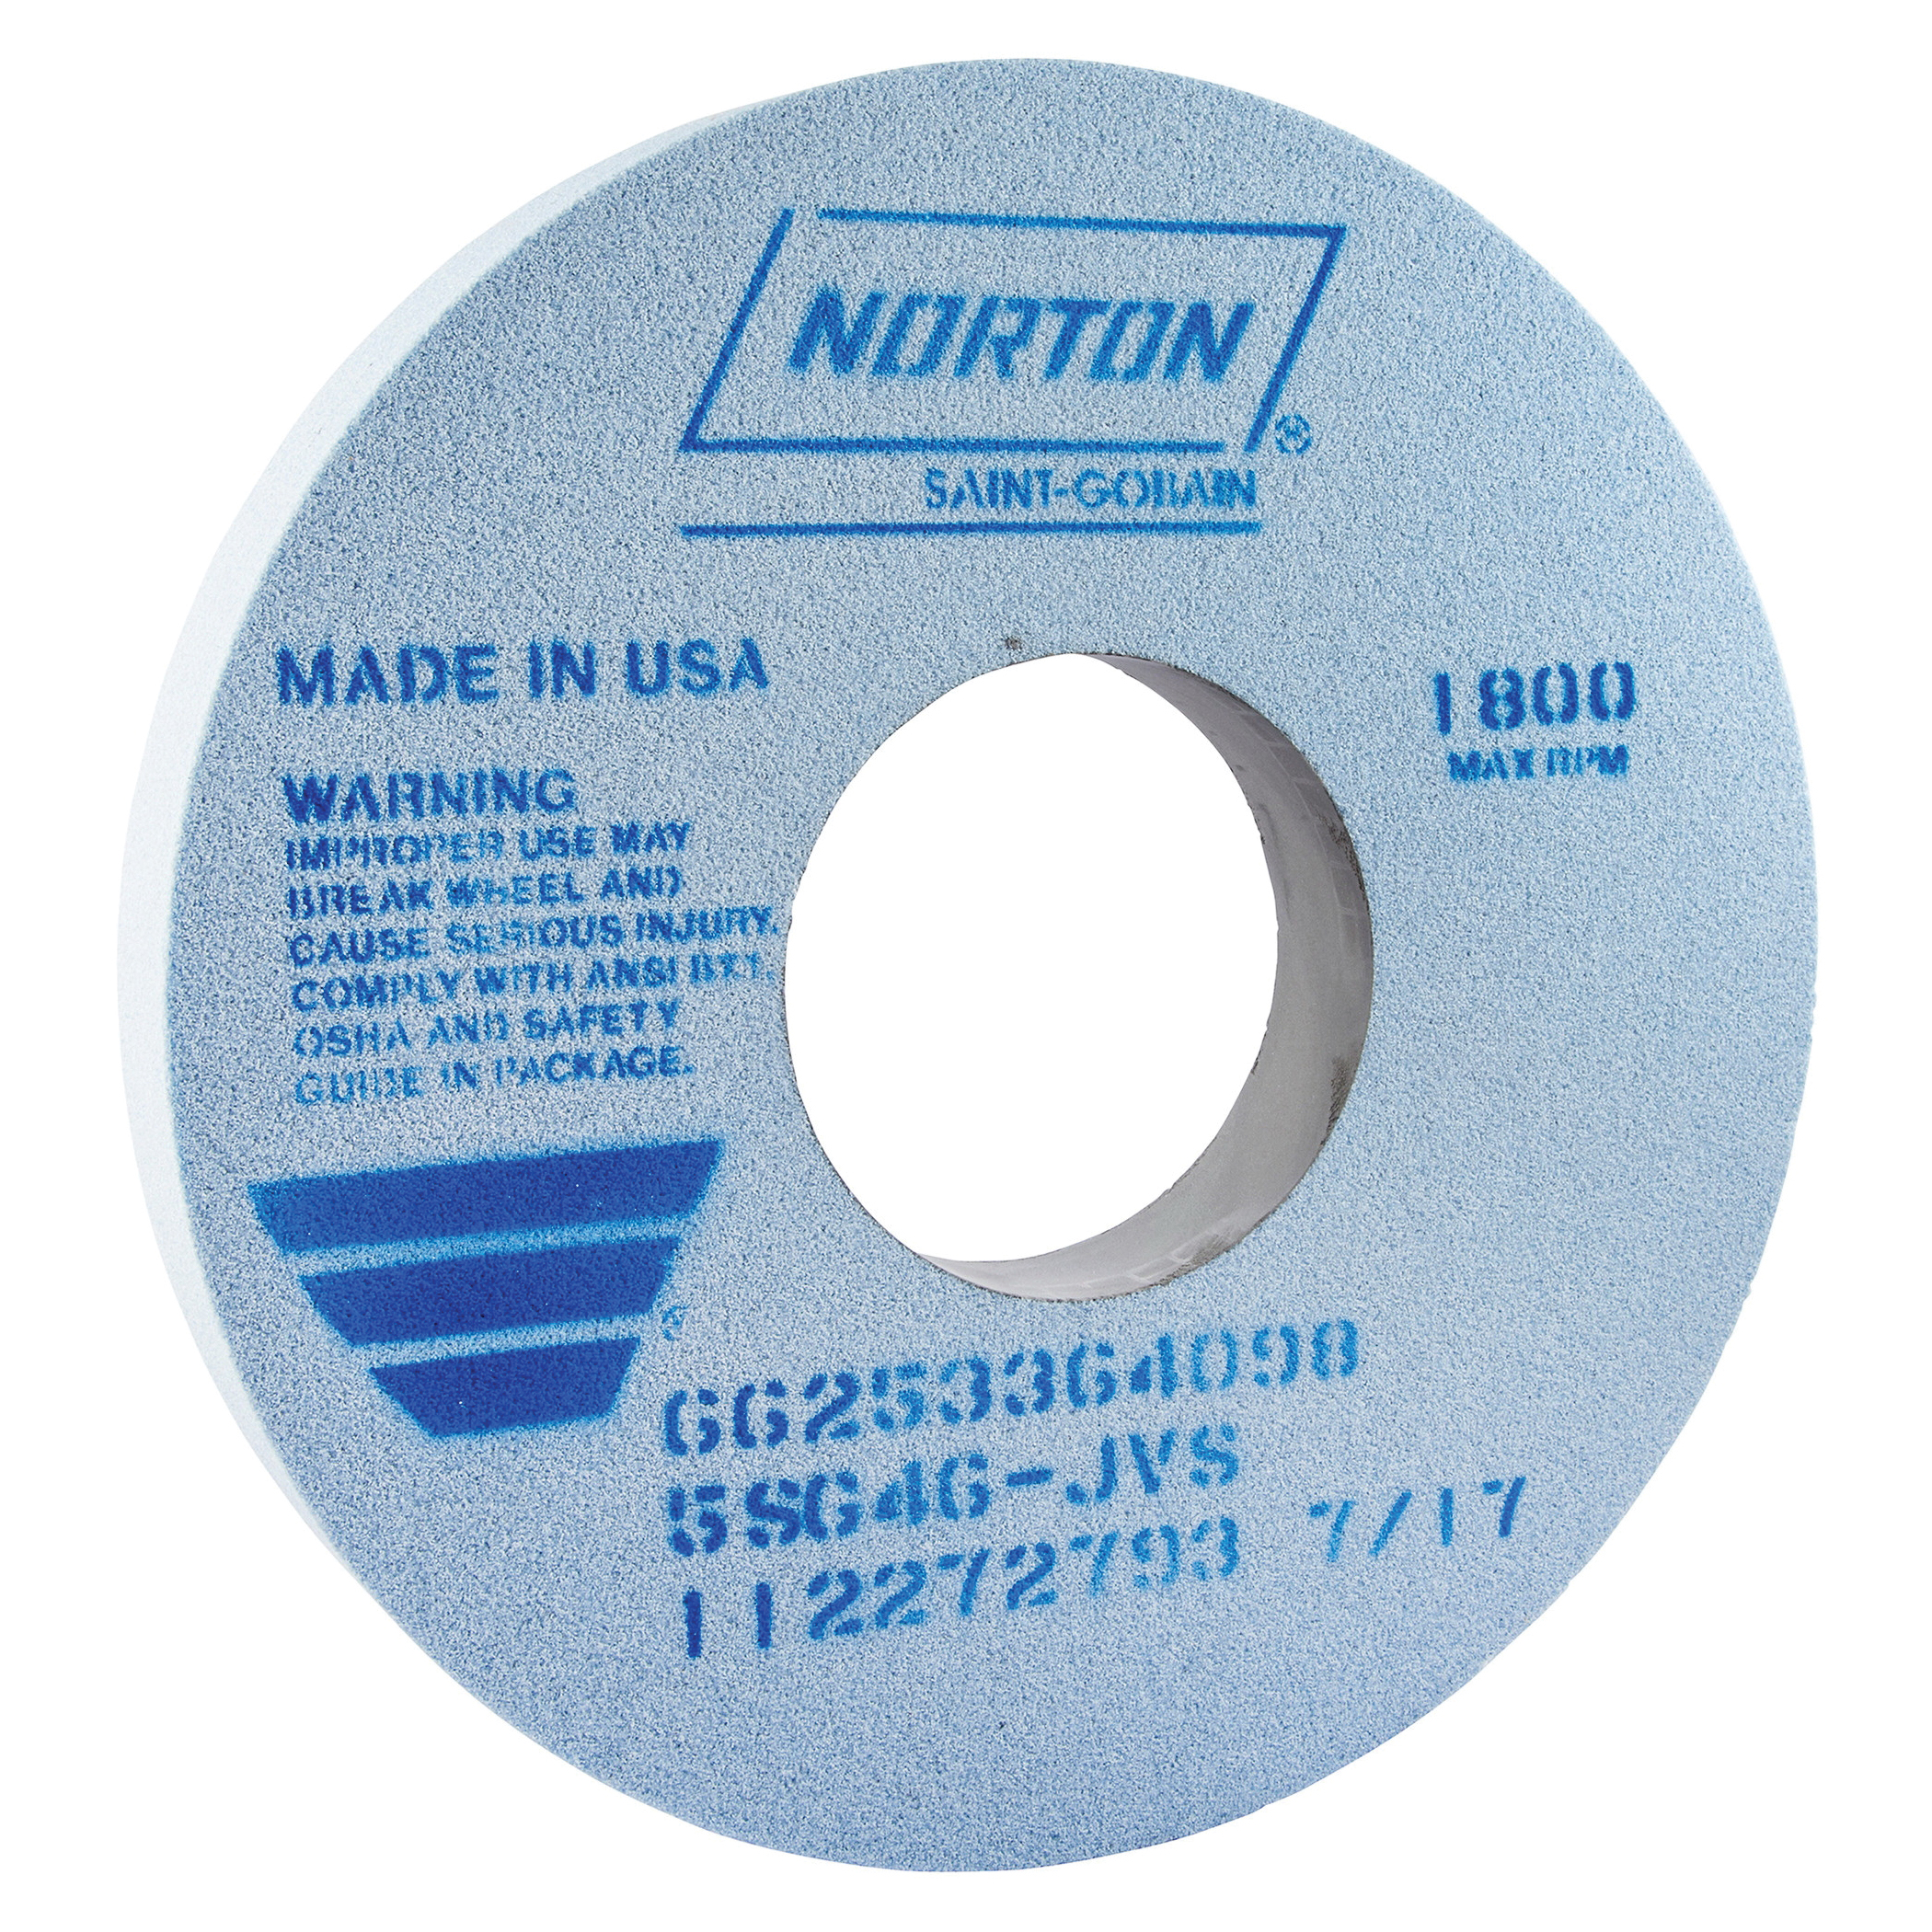 Norton® 66253364097 5SG Straight Toolroom Wheel, 14 in Dia x 1-1/2 in THK, 5 in Center Hole, 46 Grit, Ceramic Alumina/Friable Aluminum Oxide Abrasive